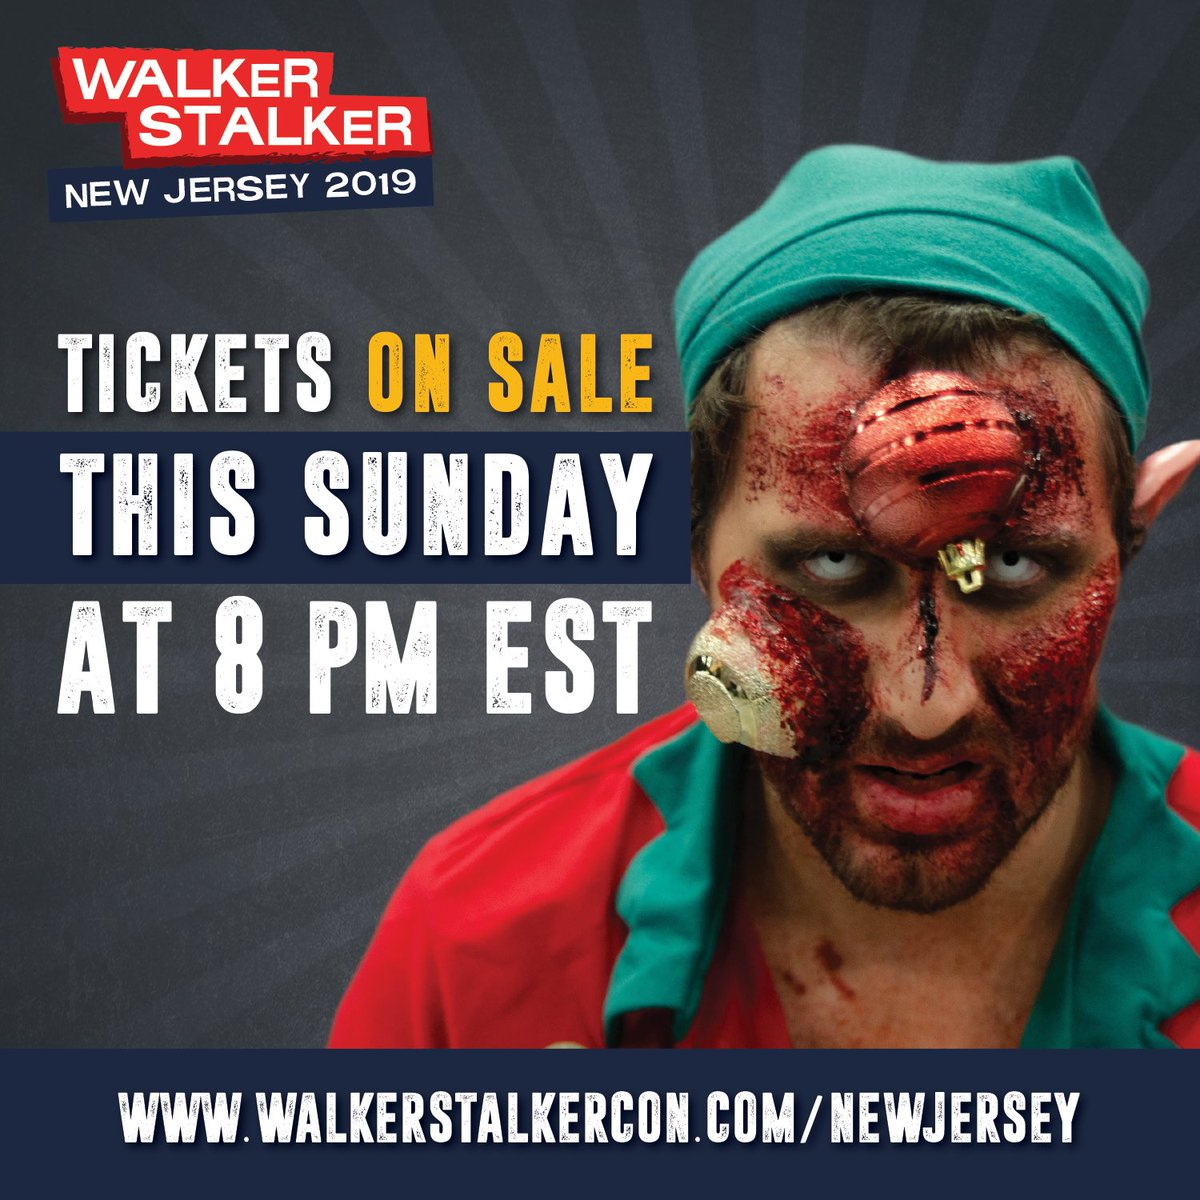 NEW JERSEY! Tickets for #WSCNJ 2019 will go on sale THIS SUNDAY, December 16 at 8PM EST. Save the date!